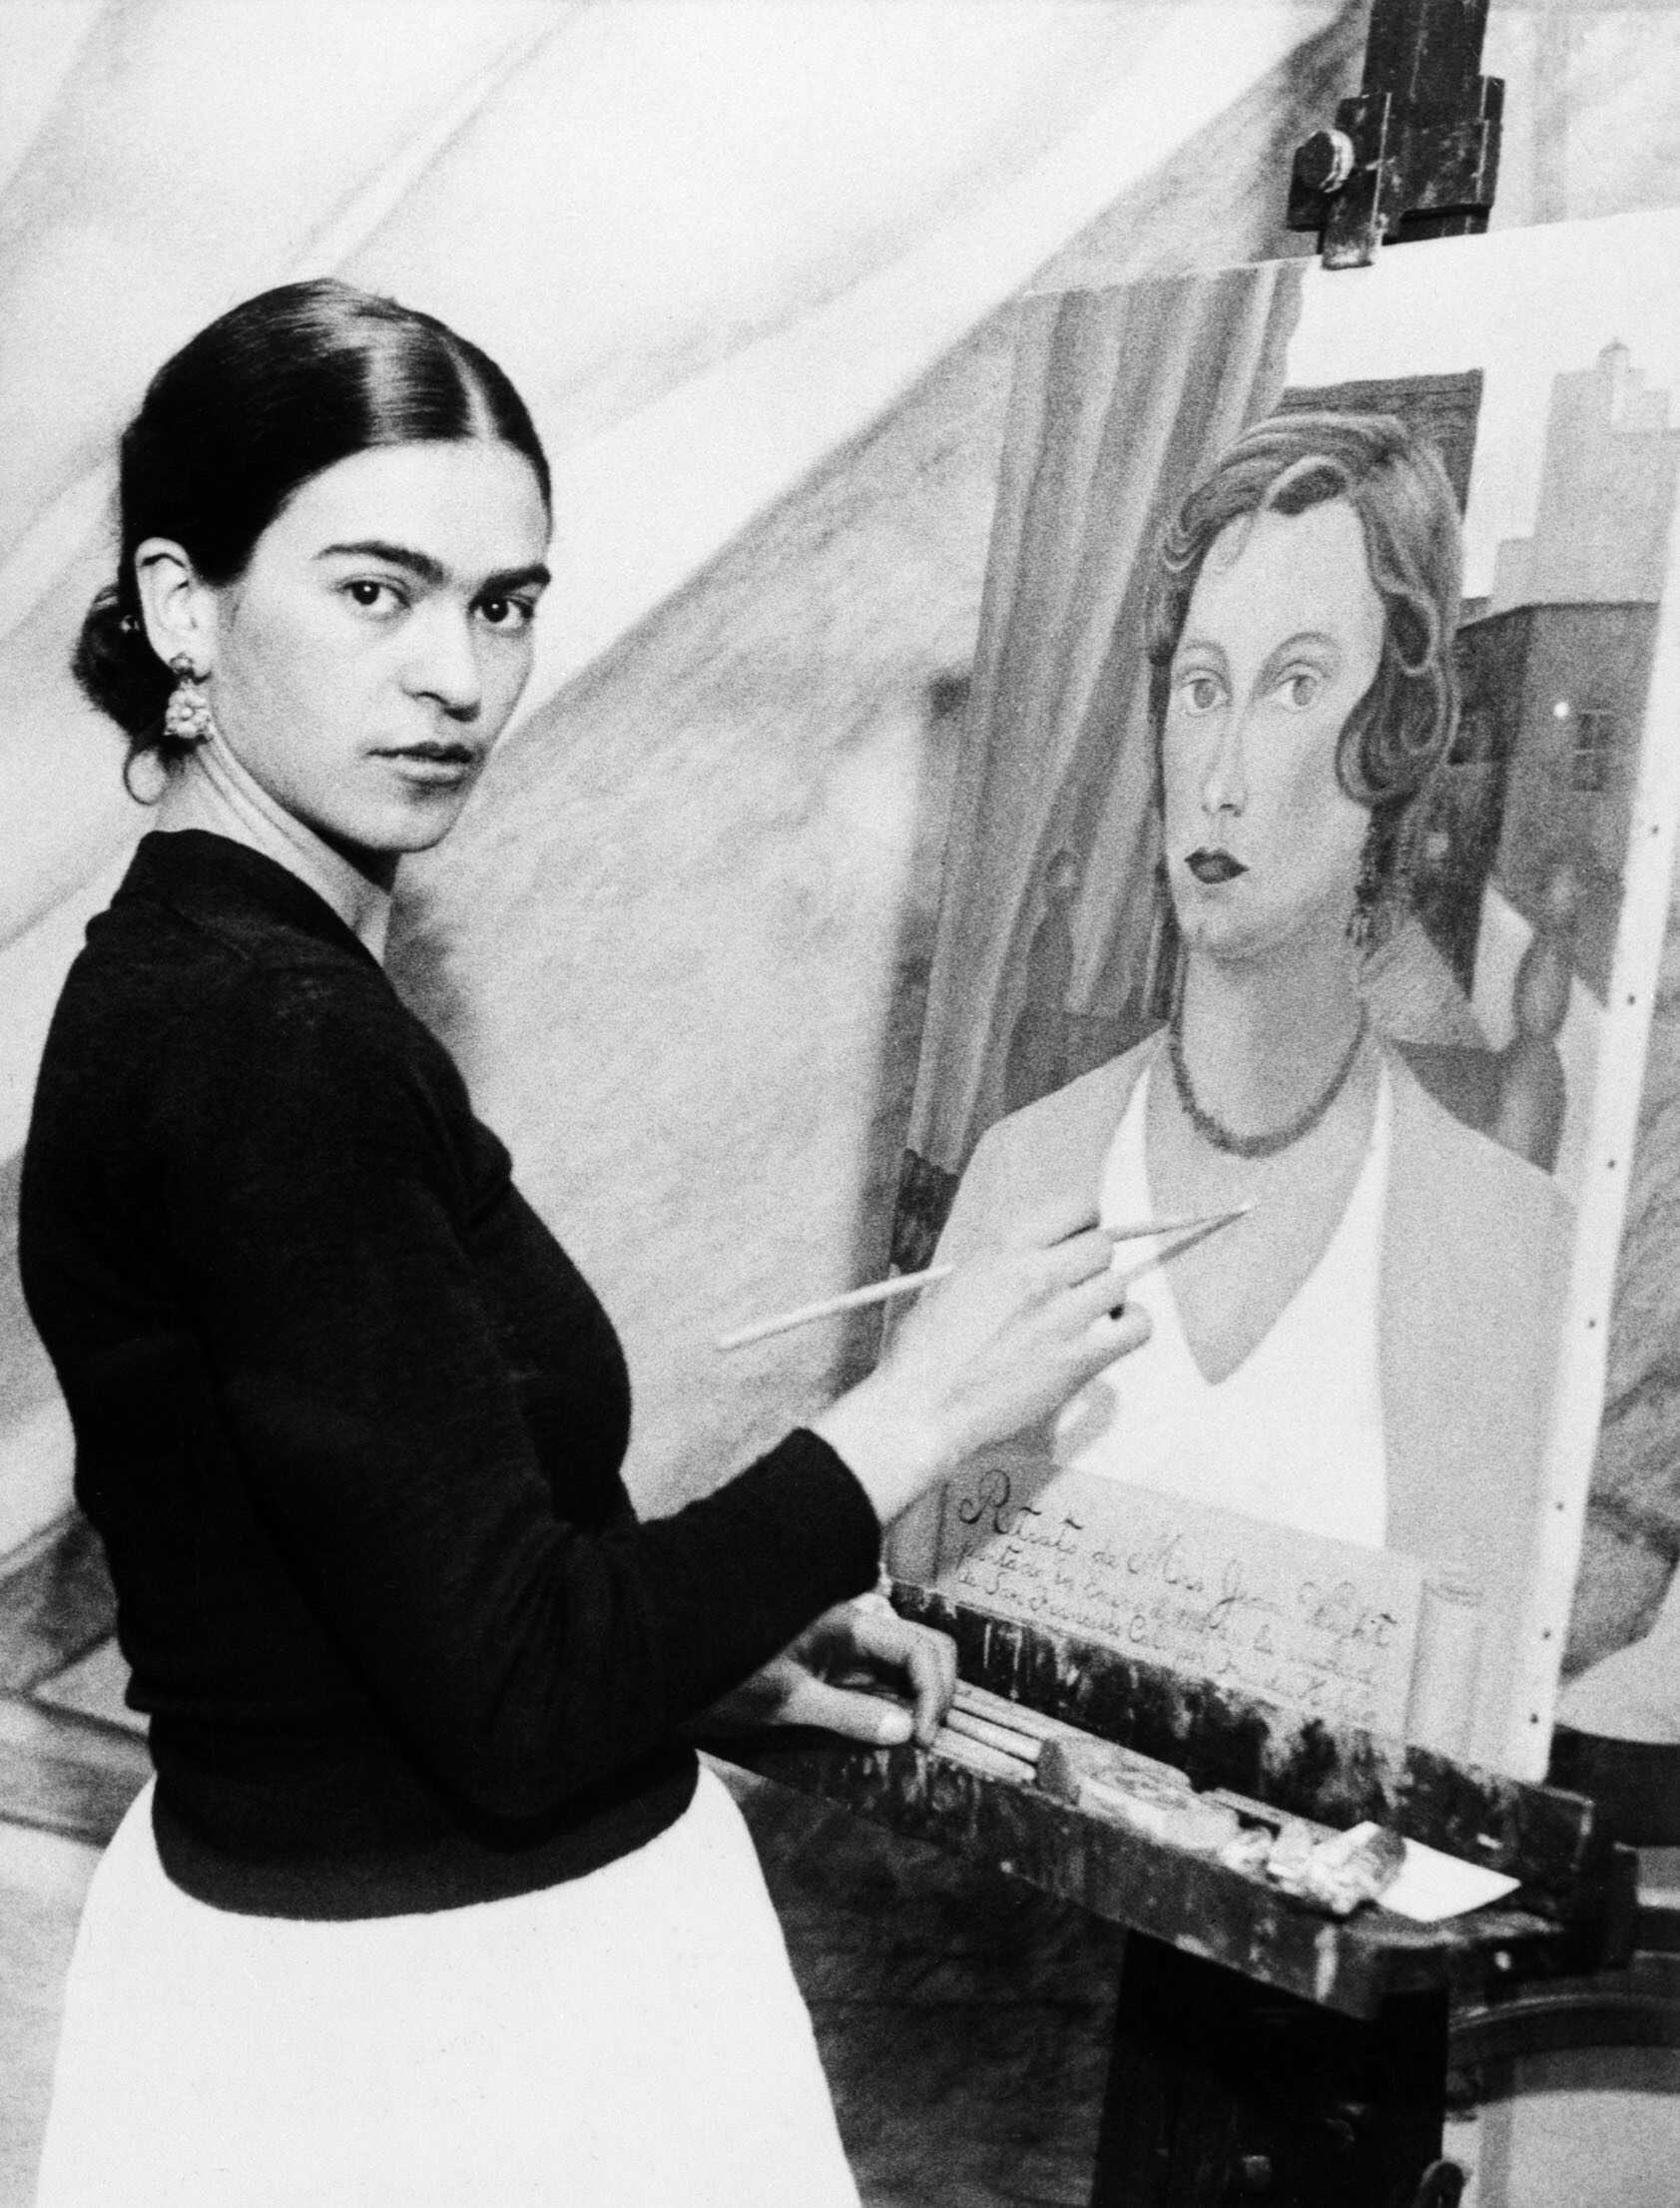 Original Caption: 1/22/1931- Even though her famous husband sits by and declines to comment on her art ambitions, Mrs. Diego Rivera, wife of the famous Mexican artist, can and does, do very passable portraits. Photo shows Mrs. Diego Rivera painting one now, and she is doing a mural for the San Francisco Stock Exchange, with one of her portraits of a San Francisco society woman.